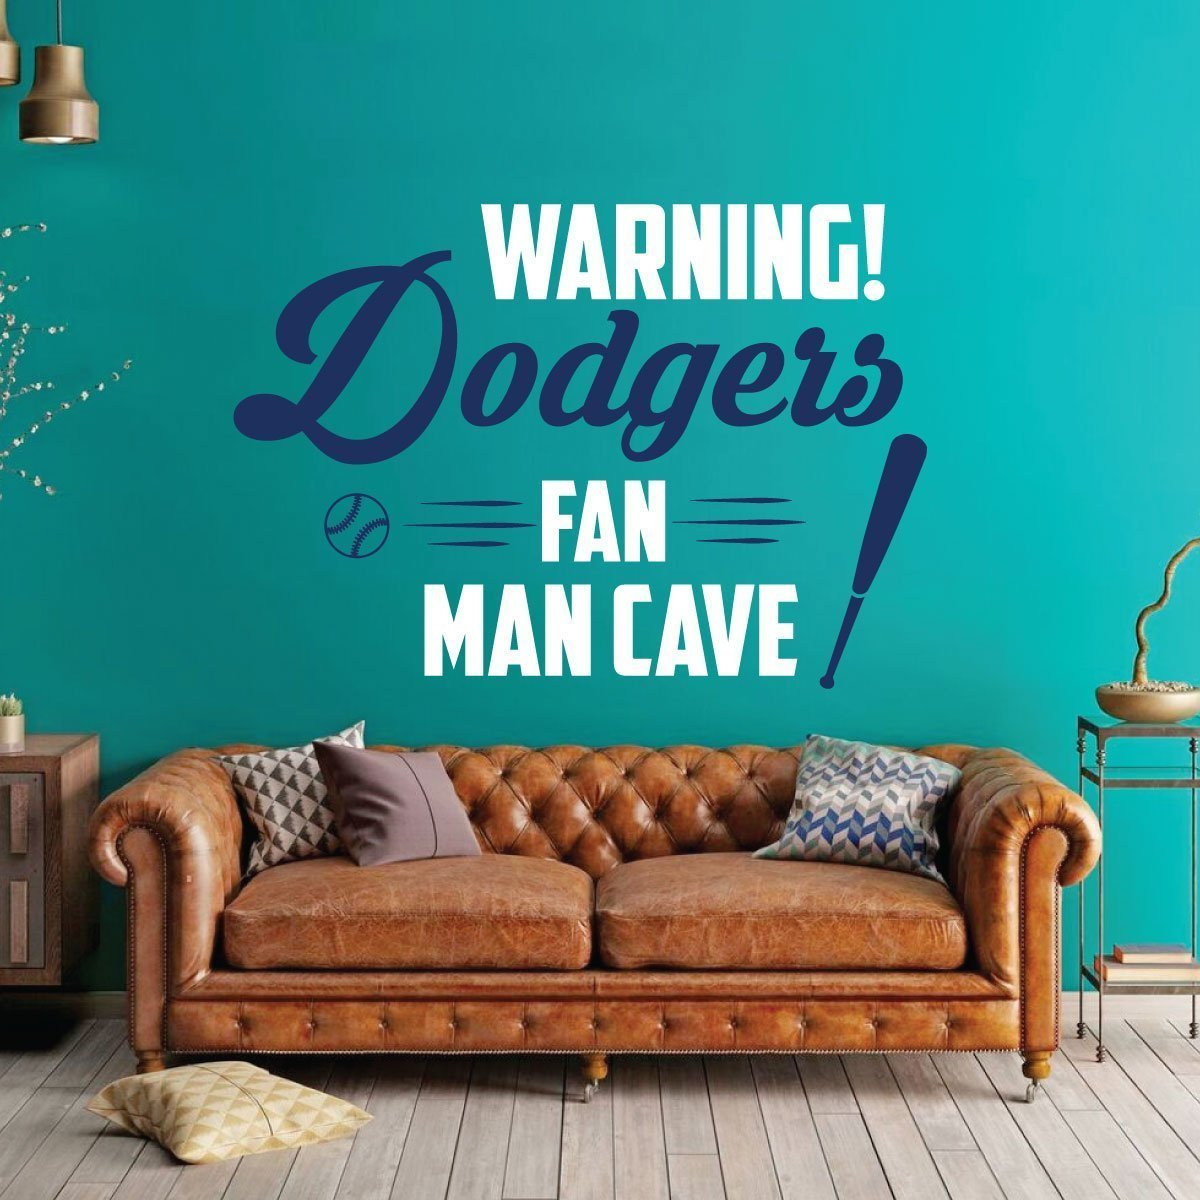 LA Dodgers Wall Decor - Baseball Decorations - Sports Team Athlete Bedroom Decor